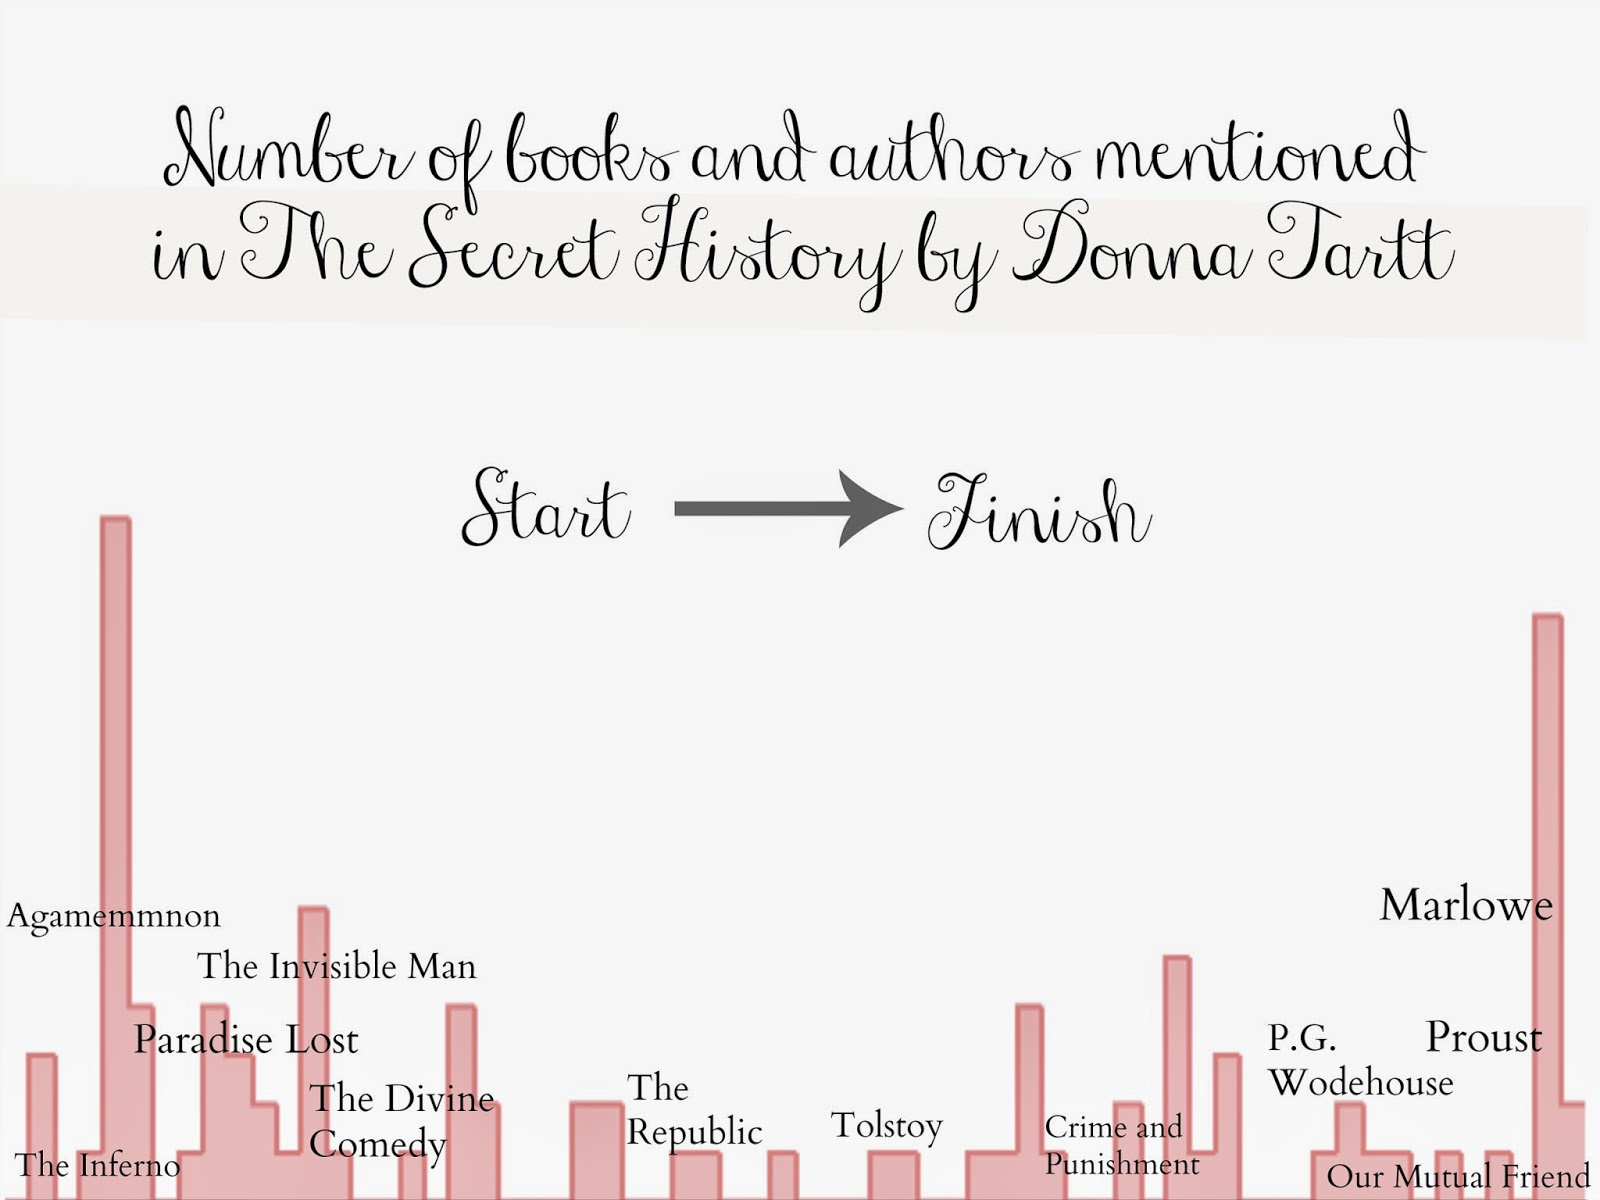 Books mentioned in The Secret History infographic